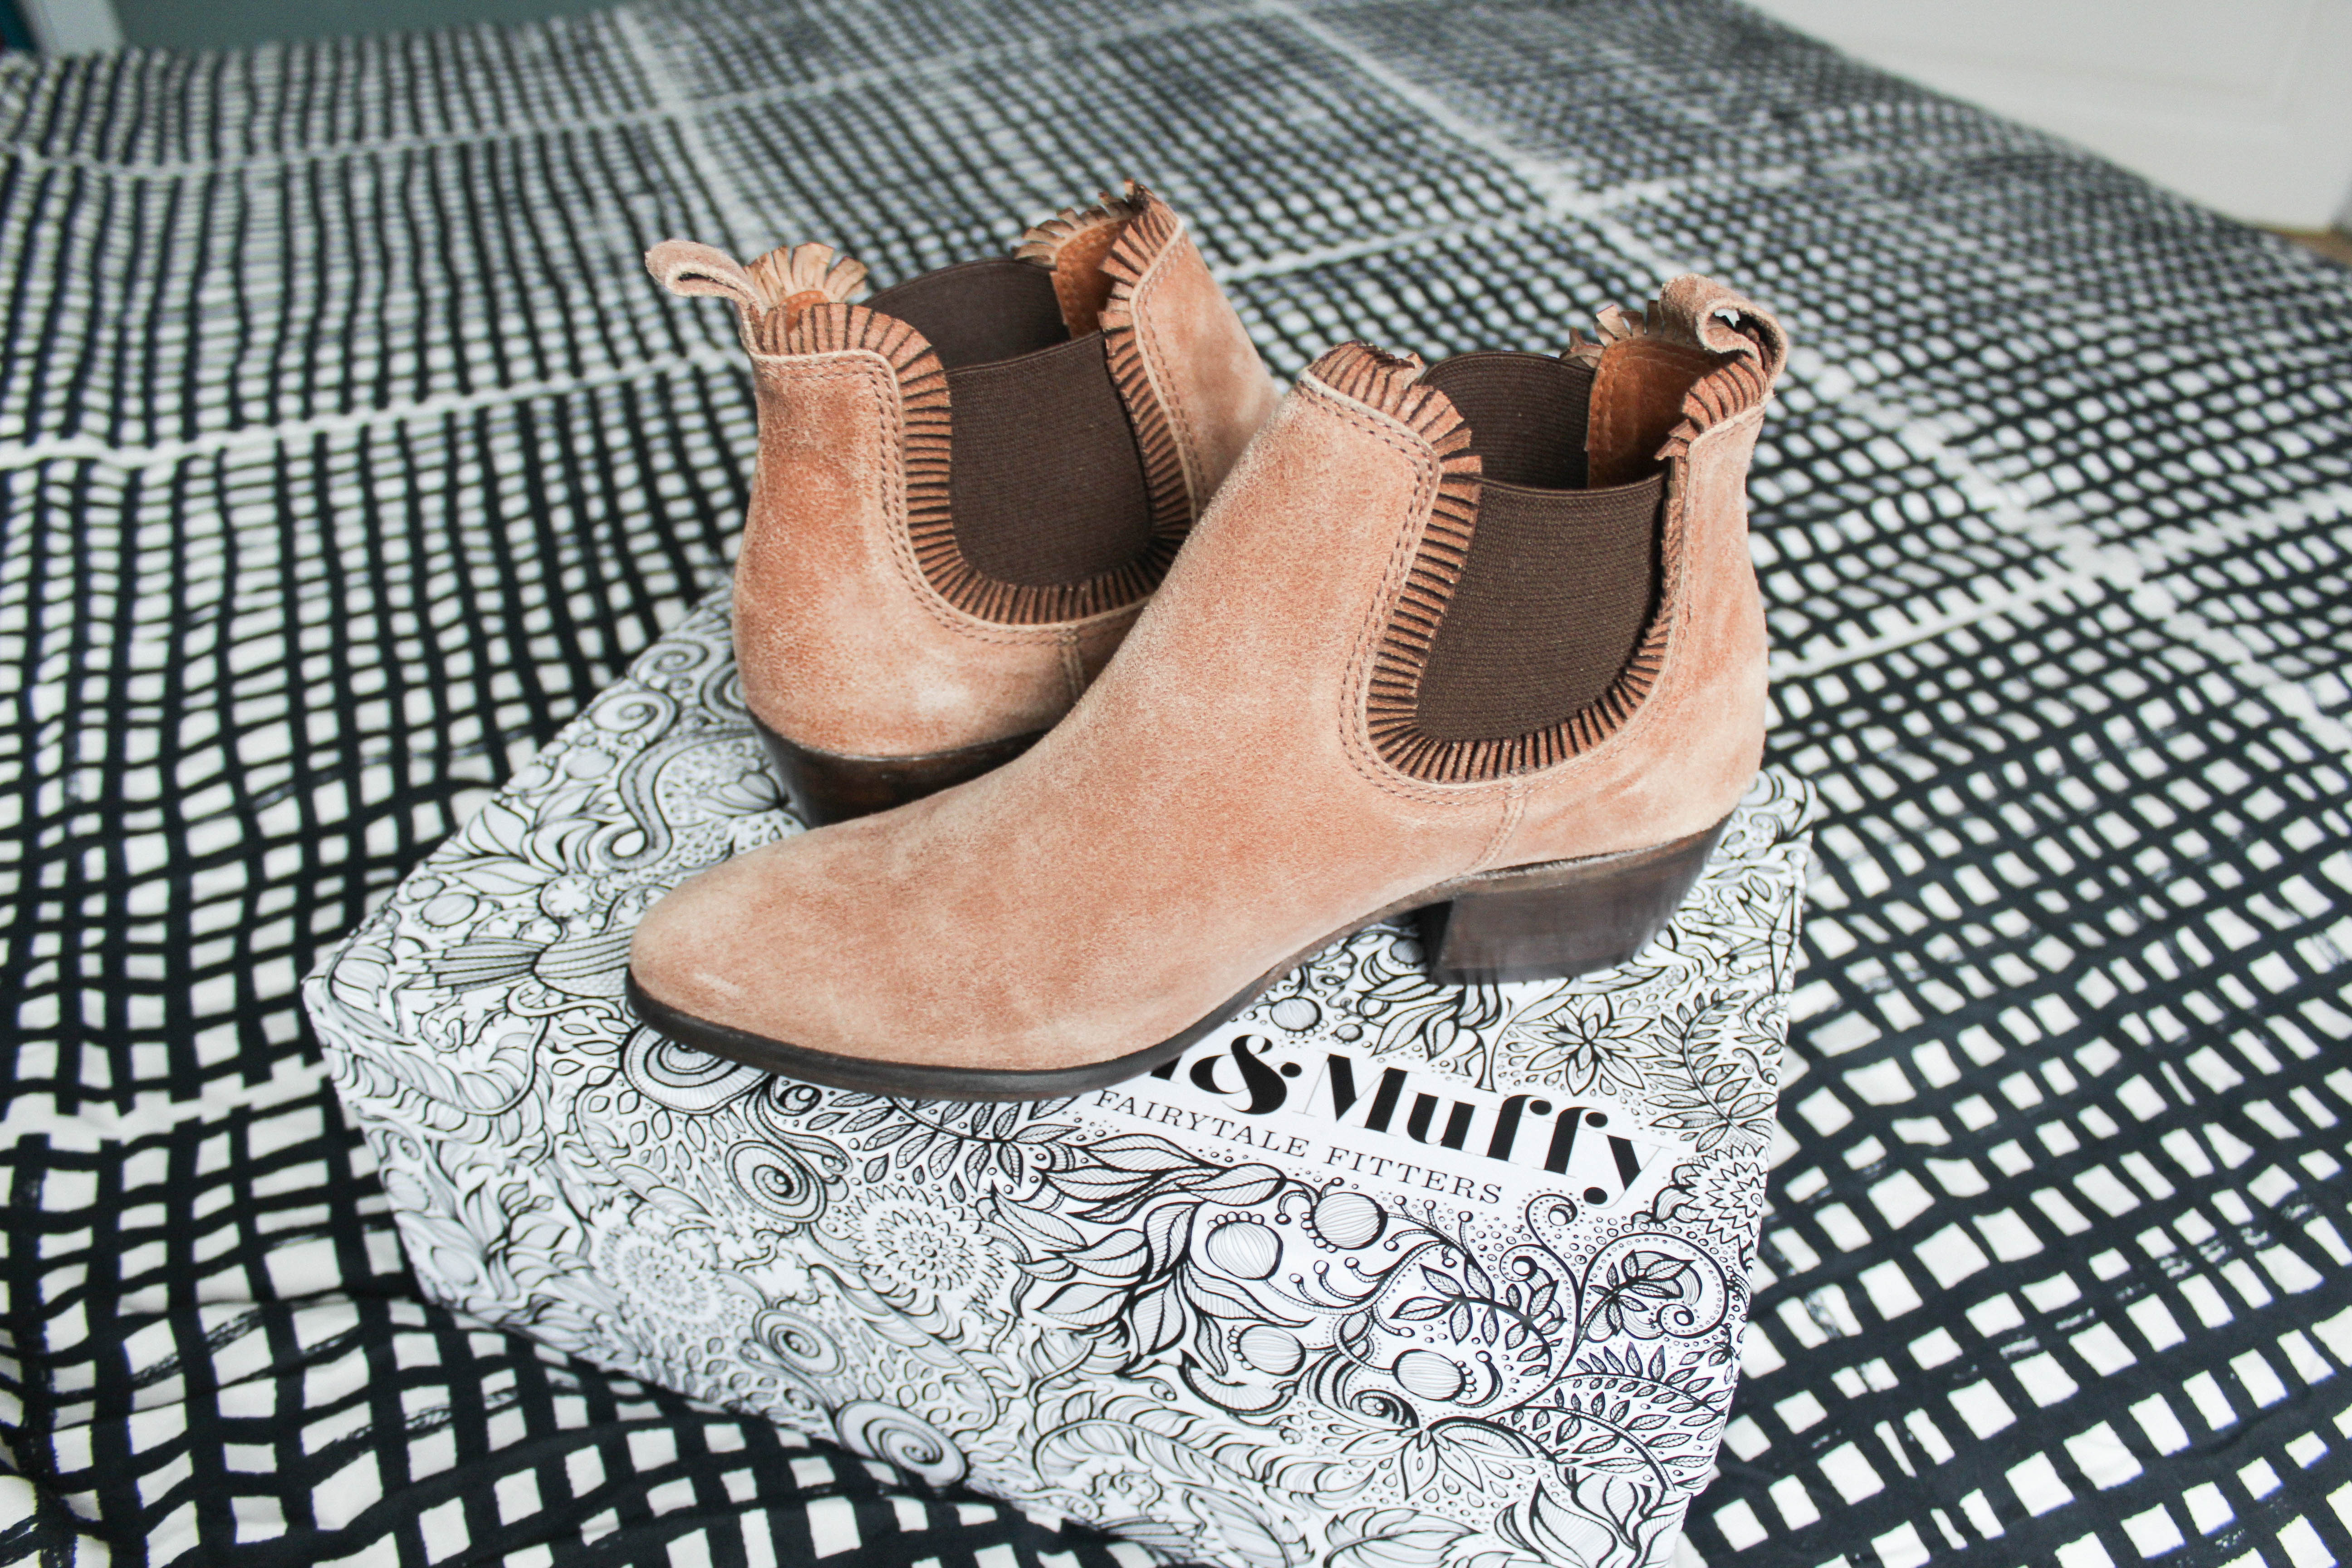 come-back-boots-ted-muffy-mademoisellevi-3